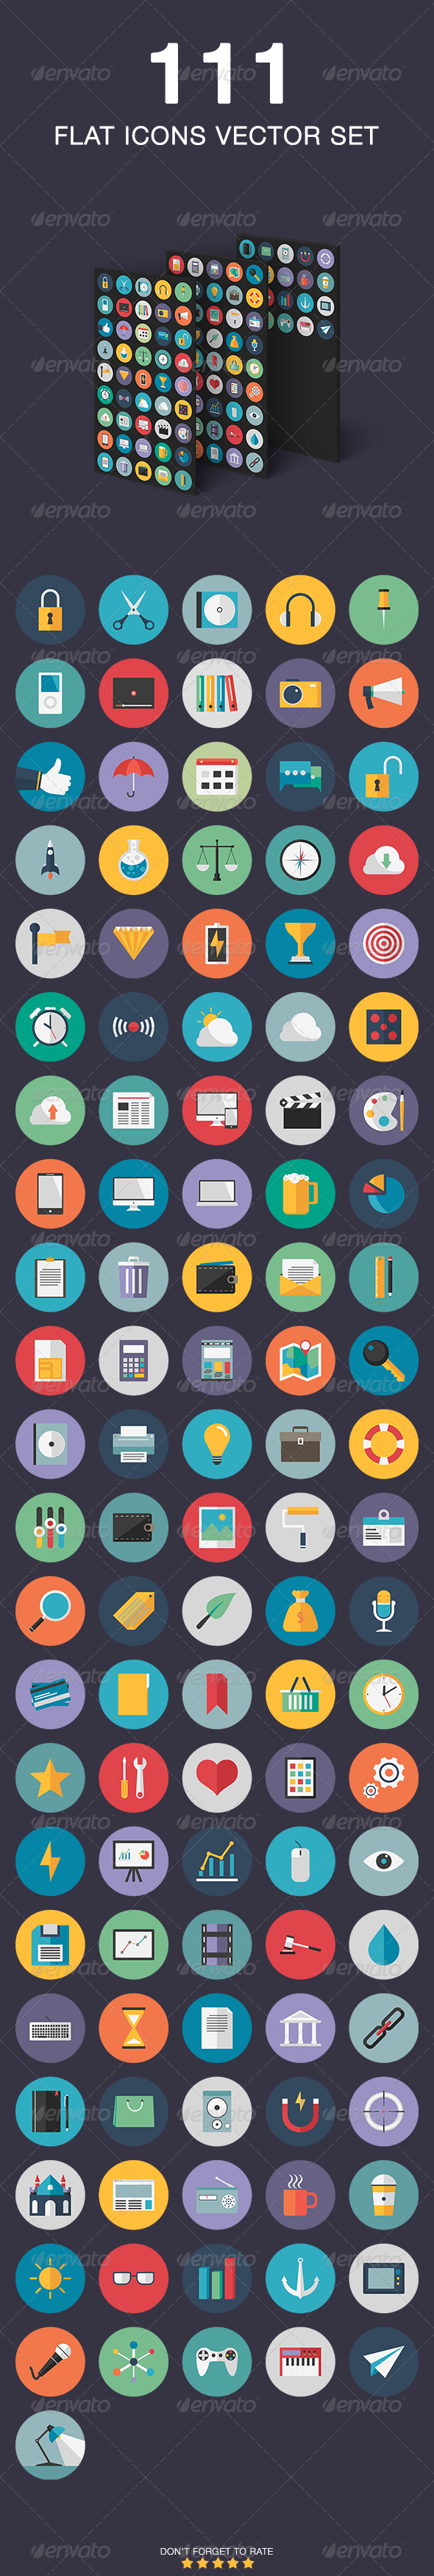 Flat Icons Vector Set - Web Icons